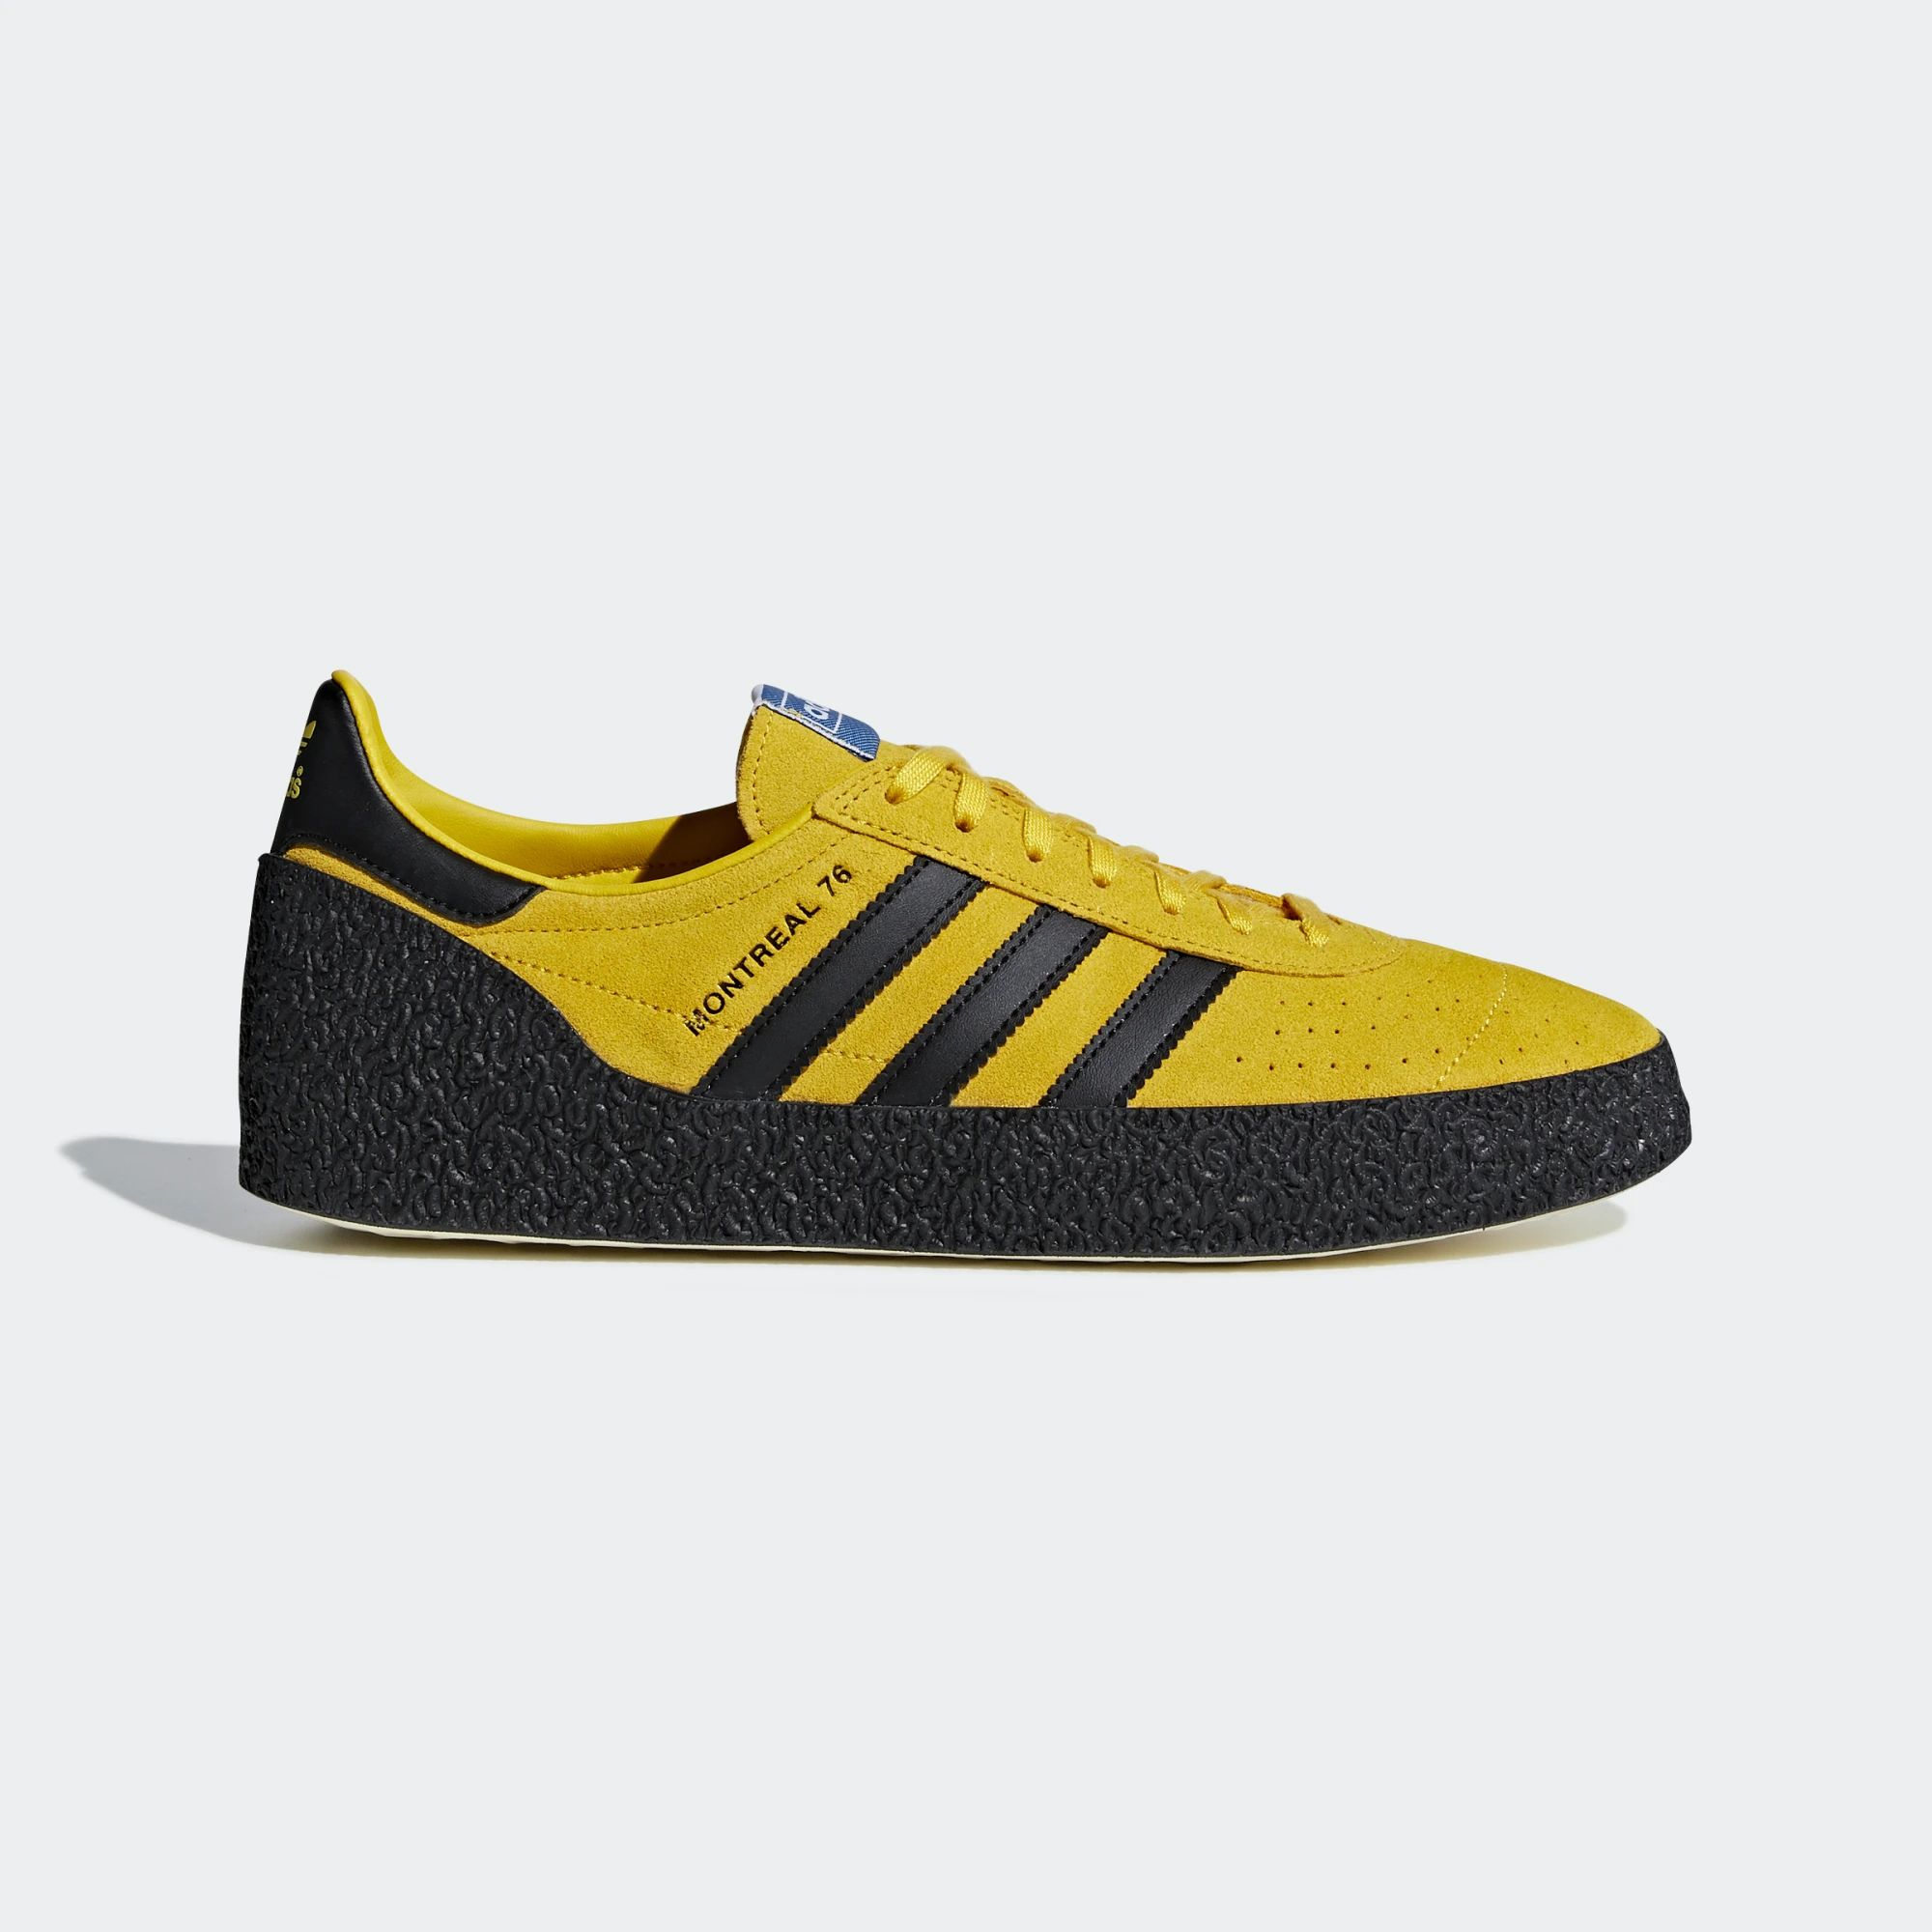 Adidas Montreal 76 Shoes - Bold Gold / Core Black / Cream White